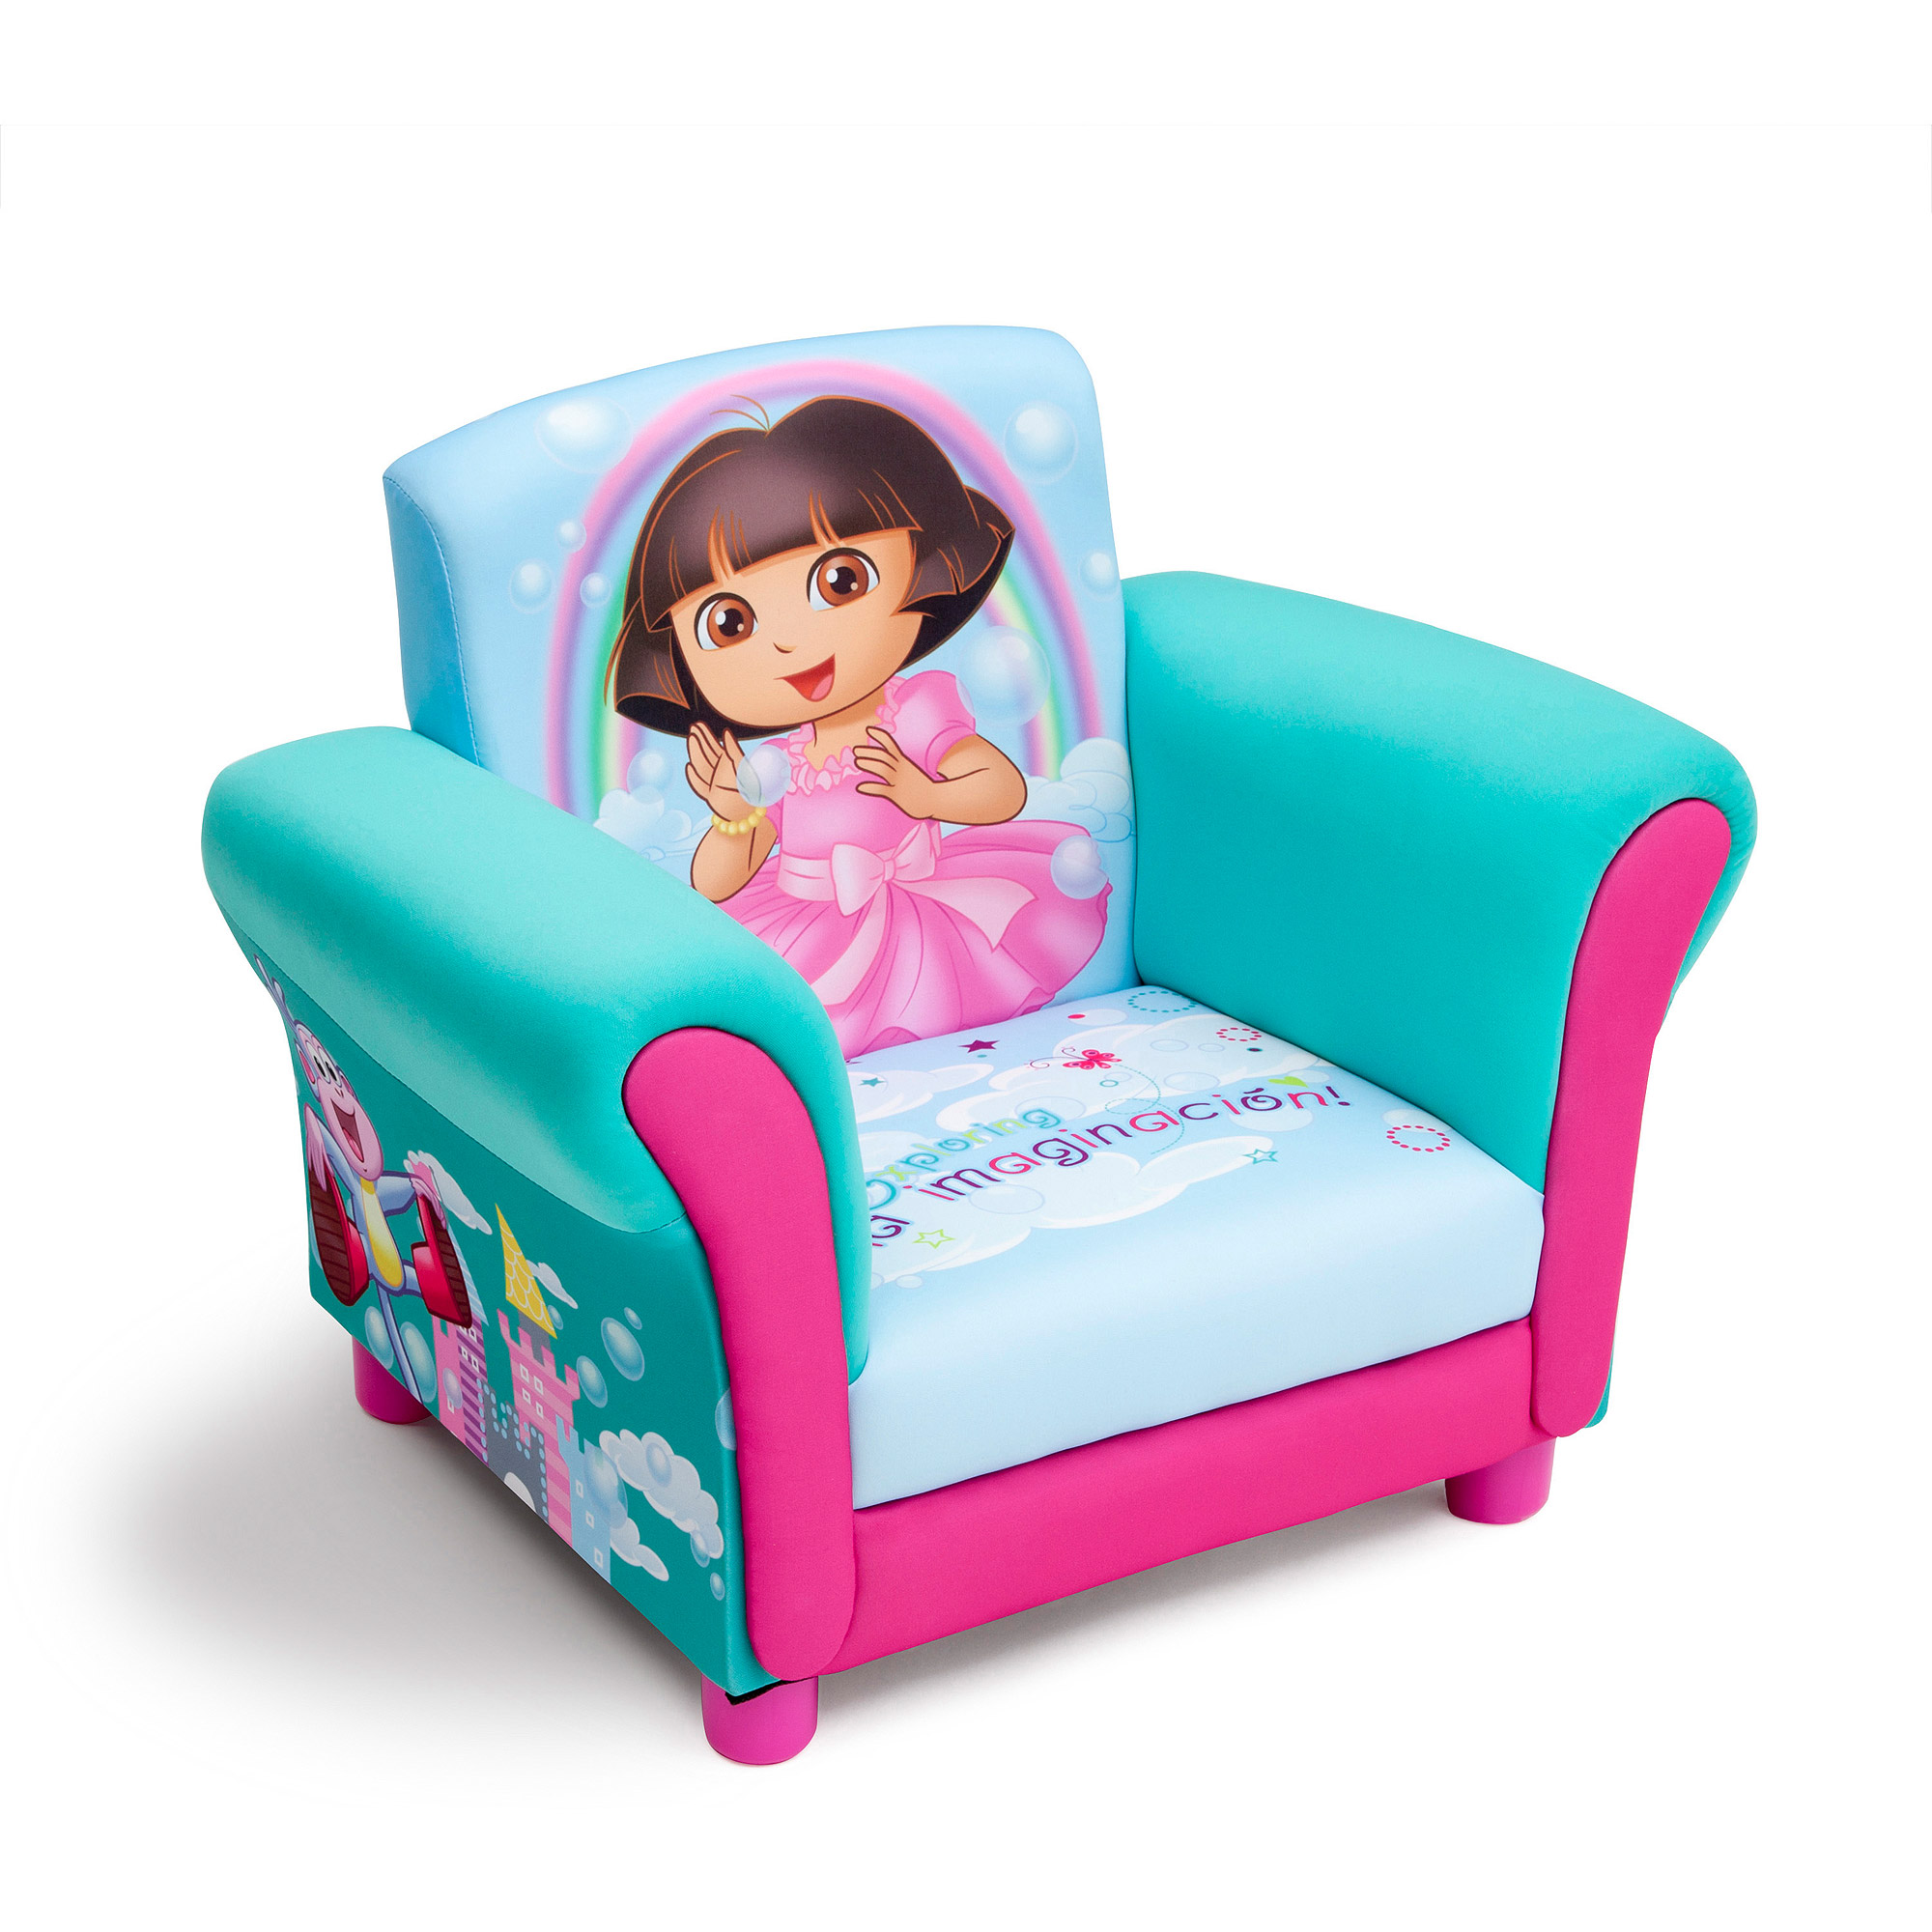 Delta Children's Products Nickelodeon Dora Upholstered Chair